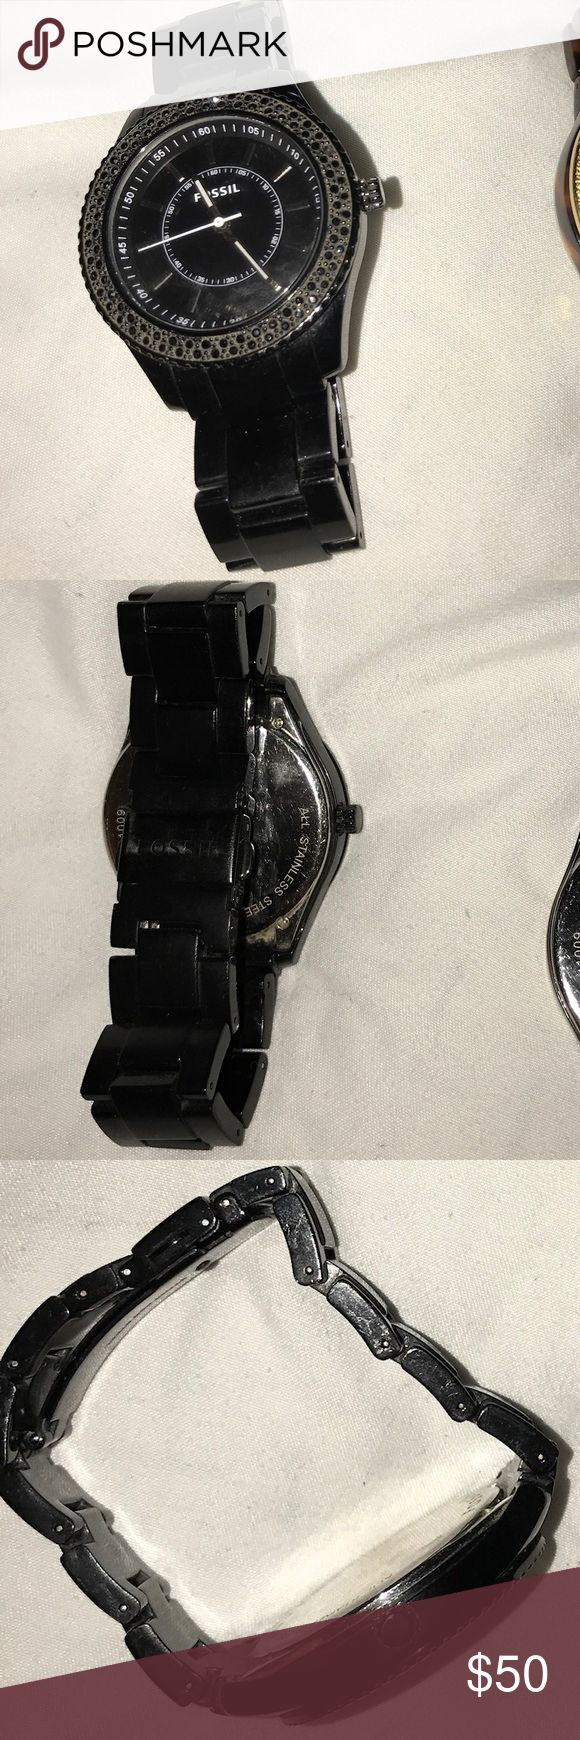 Fossil Watch Black Stones Used, loved, and treated well. Looks great with everything! Needs new battery. If extra links or band wanted Fossil replaces see attached photos. Price reflects. Fossil Accessories Watches